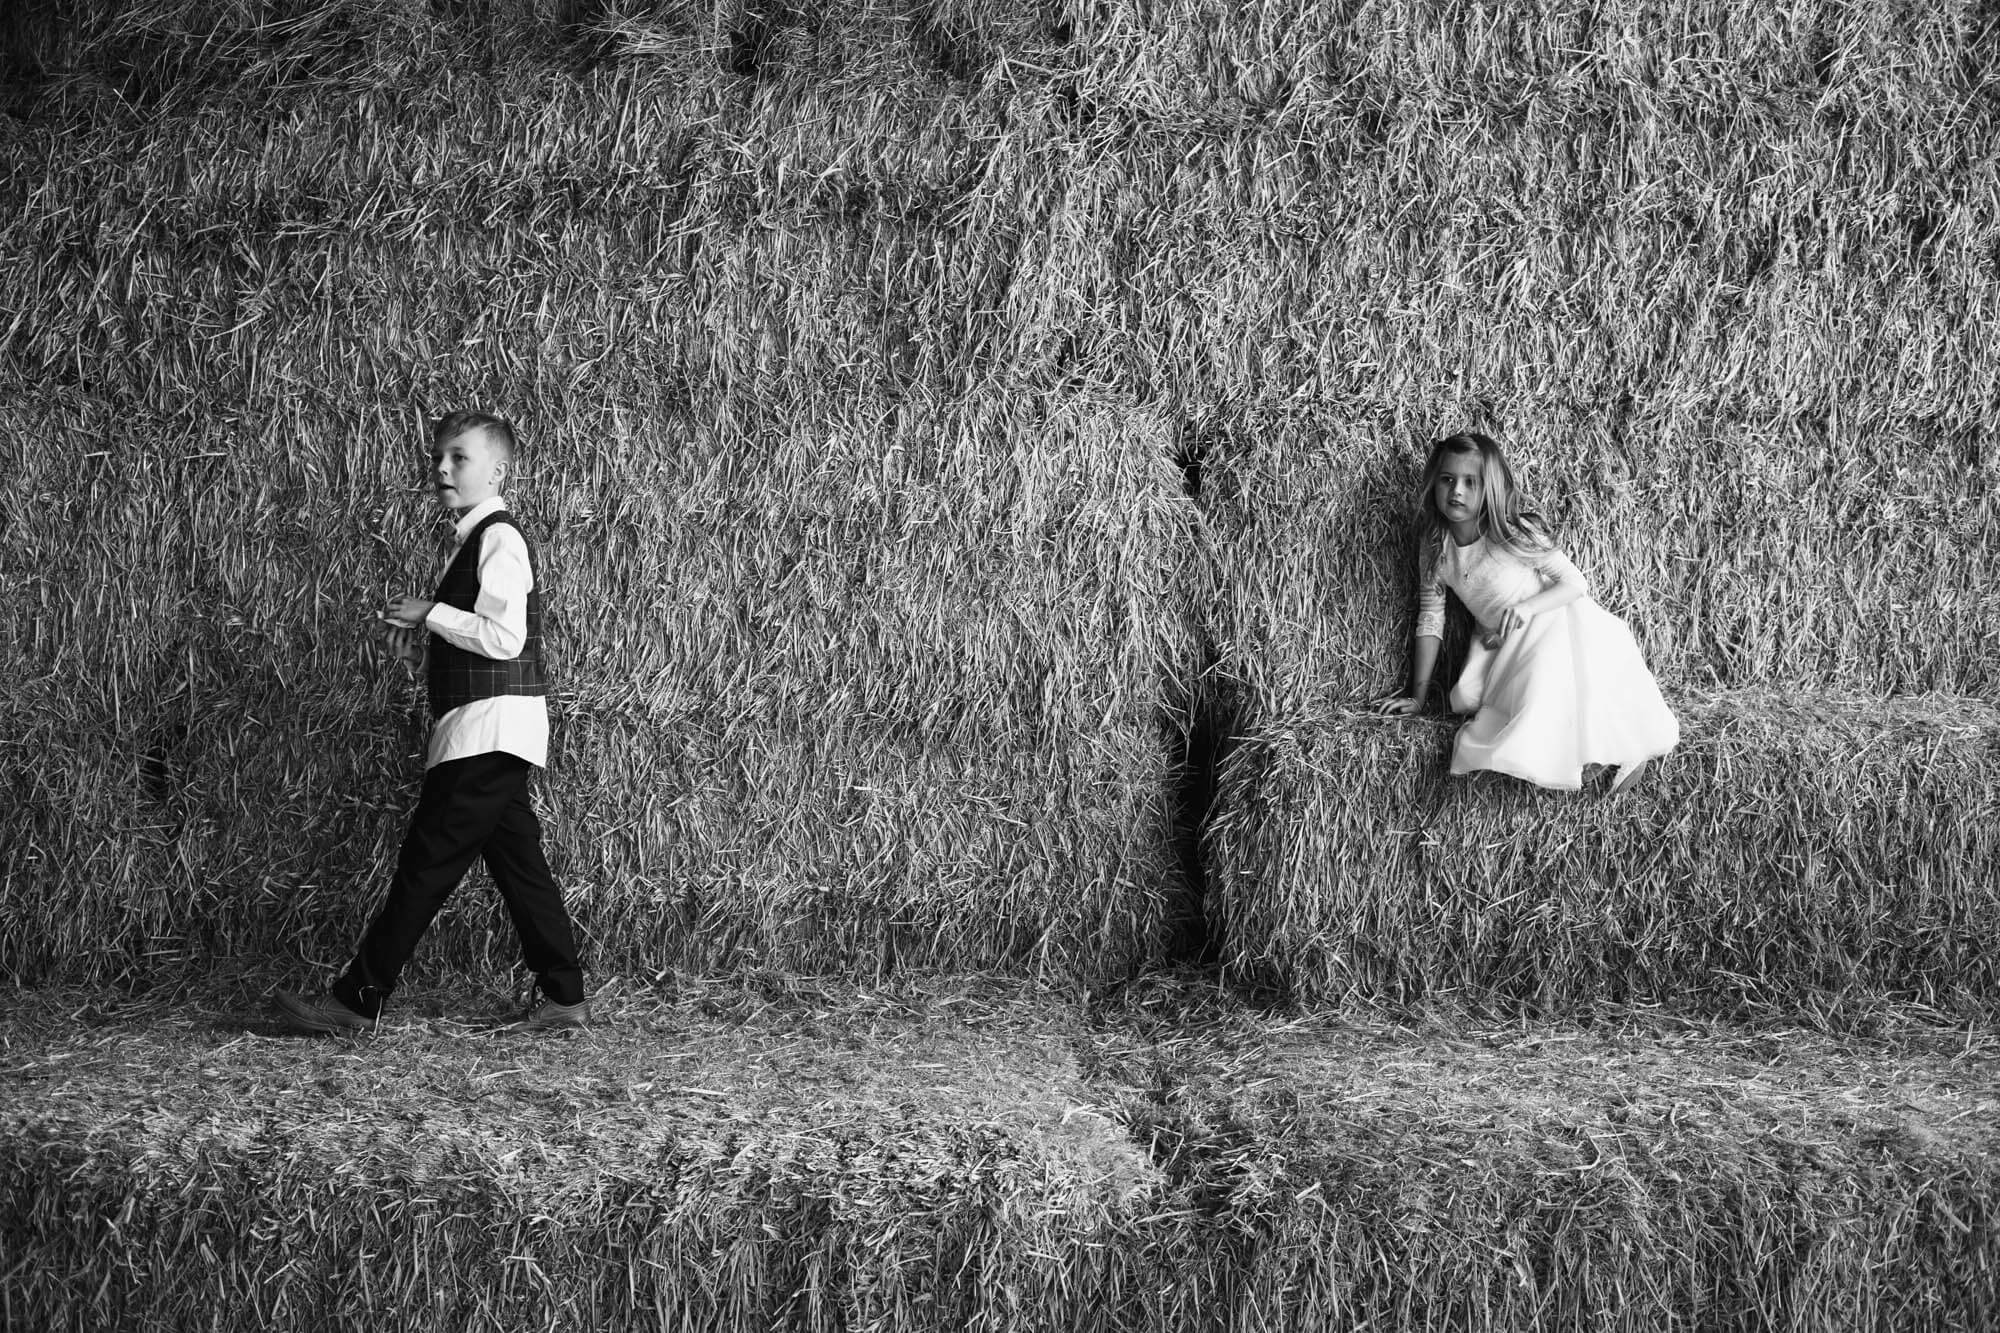 kids playing on hay bails